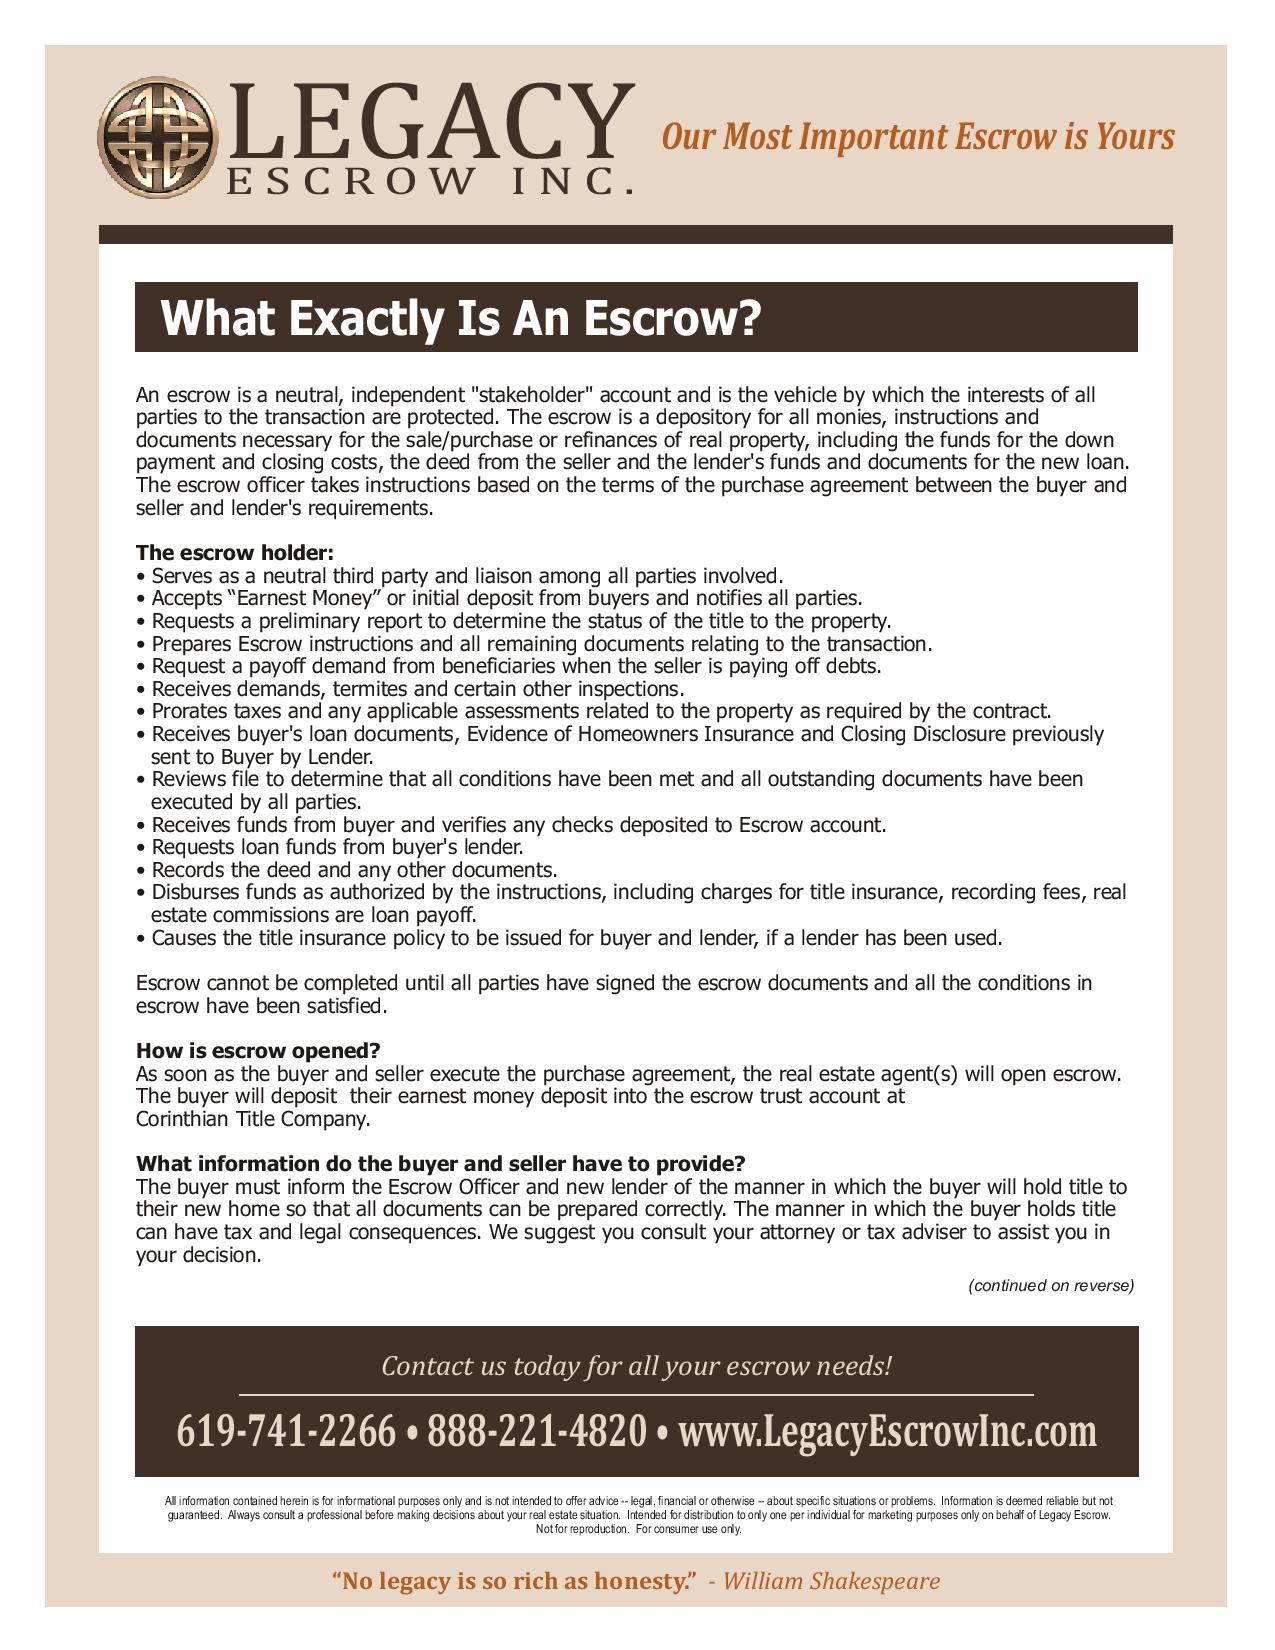 What Exactly is an Escrow?